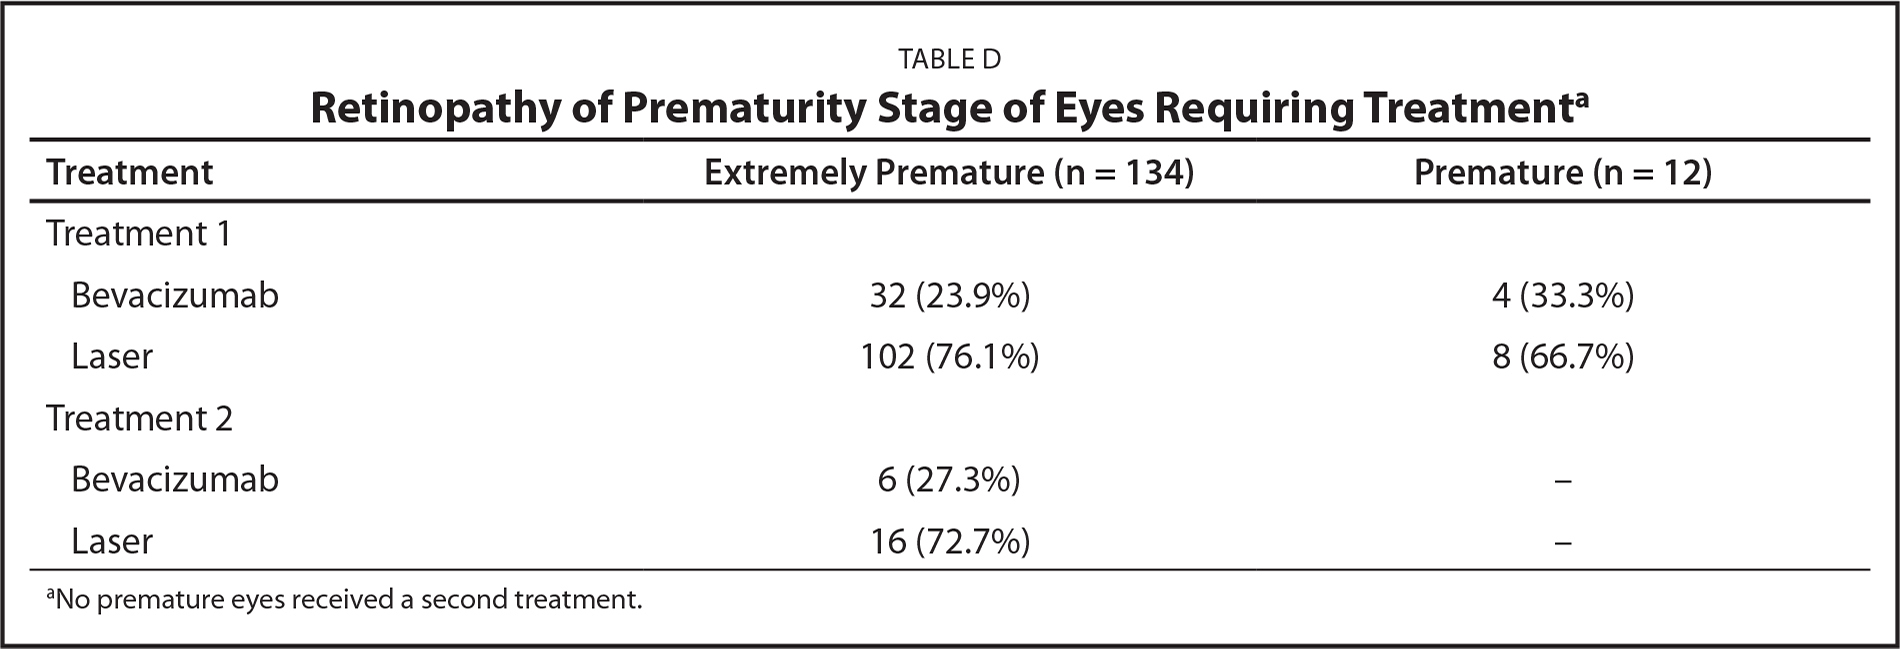 Retinopathy of Prematurity Stage of Eyes Requiring Treatmenta